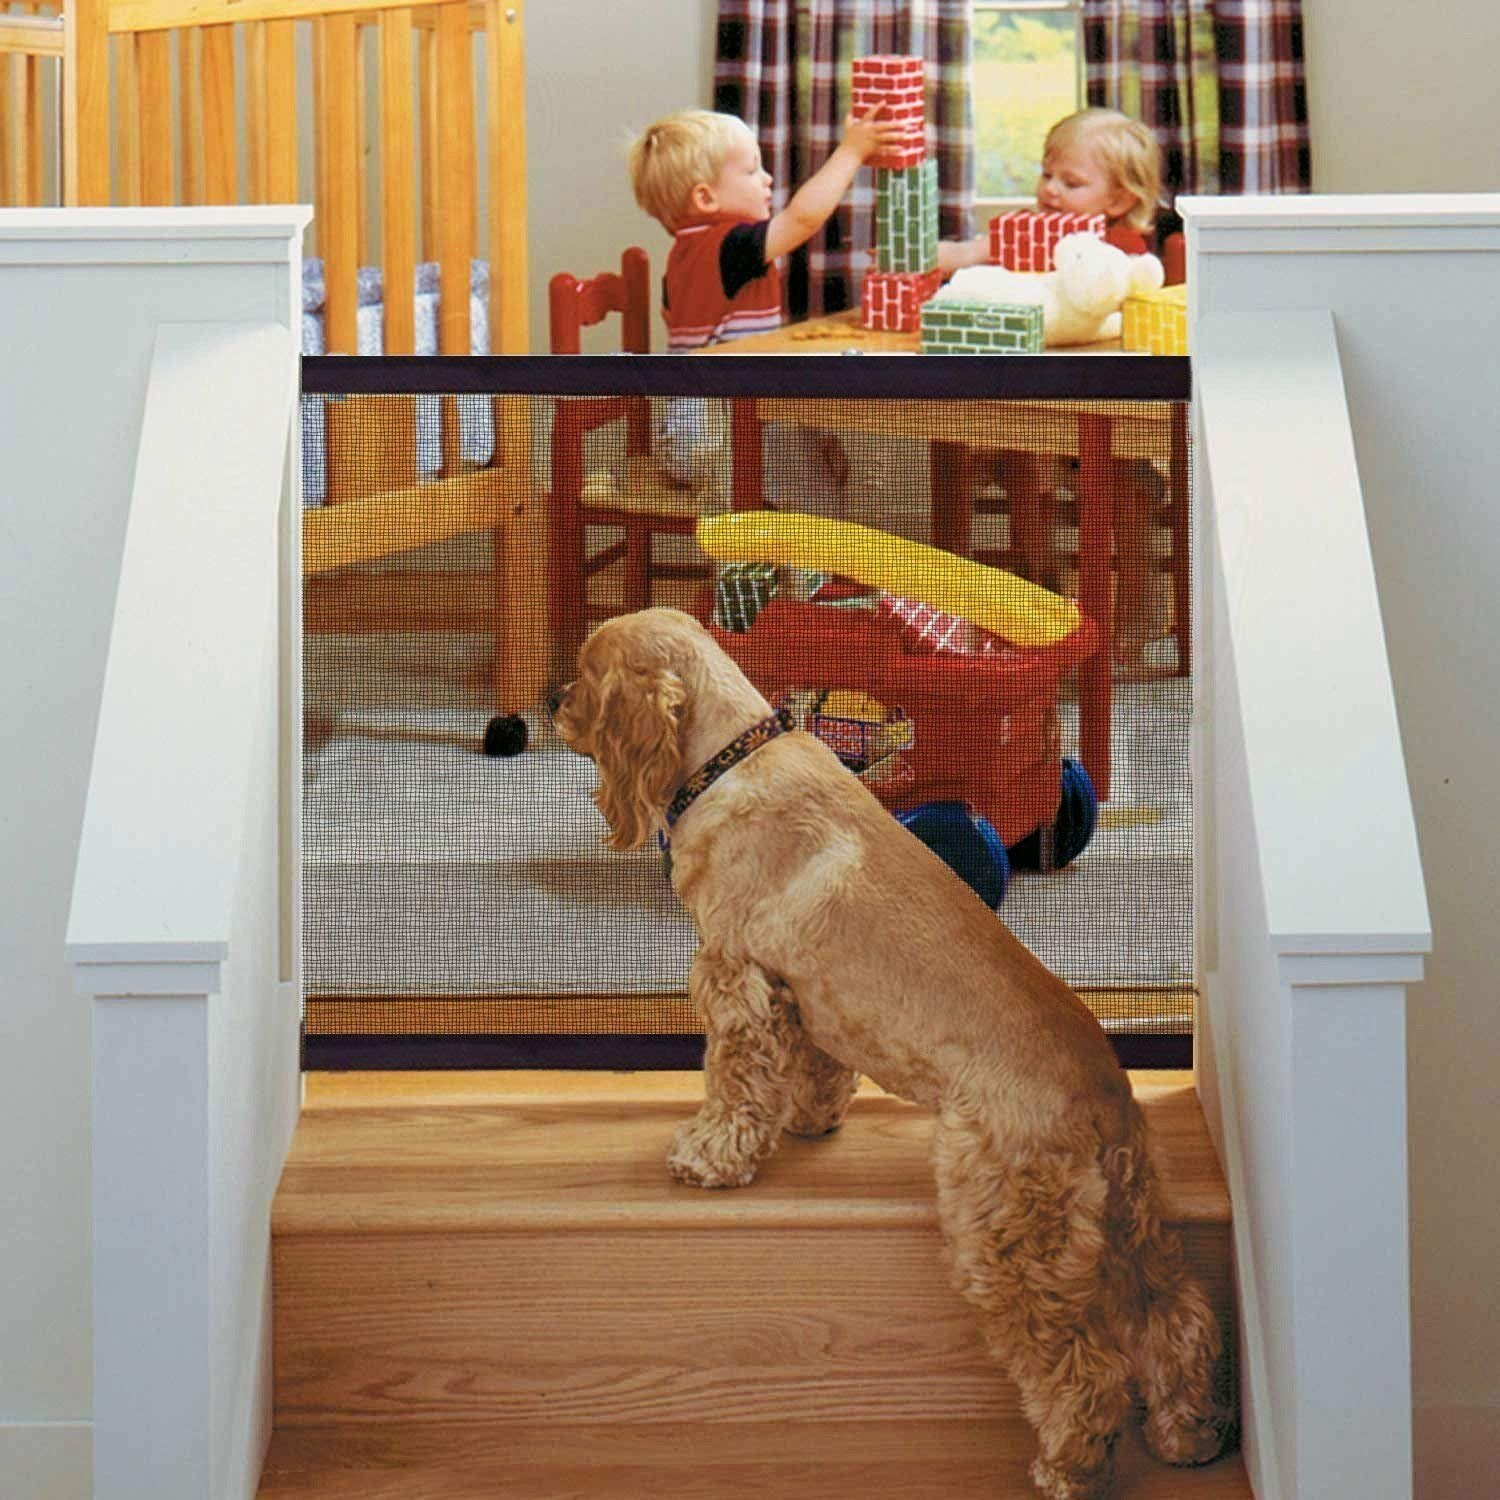 Magic Gate for Dogs - Portable Folding Mesh Screen Gate - for House Indoor Use - Dog Safe Guard Install Anywhere - As Seen On TV Infina